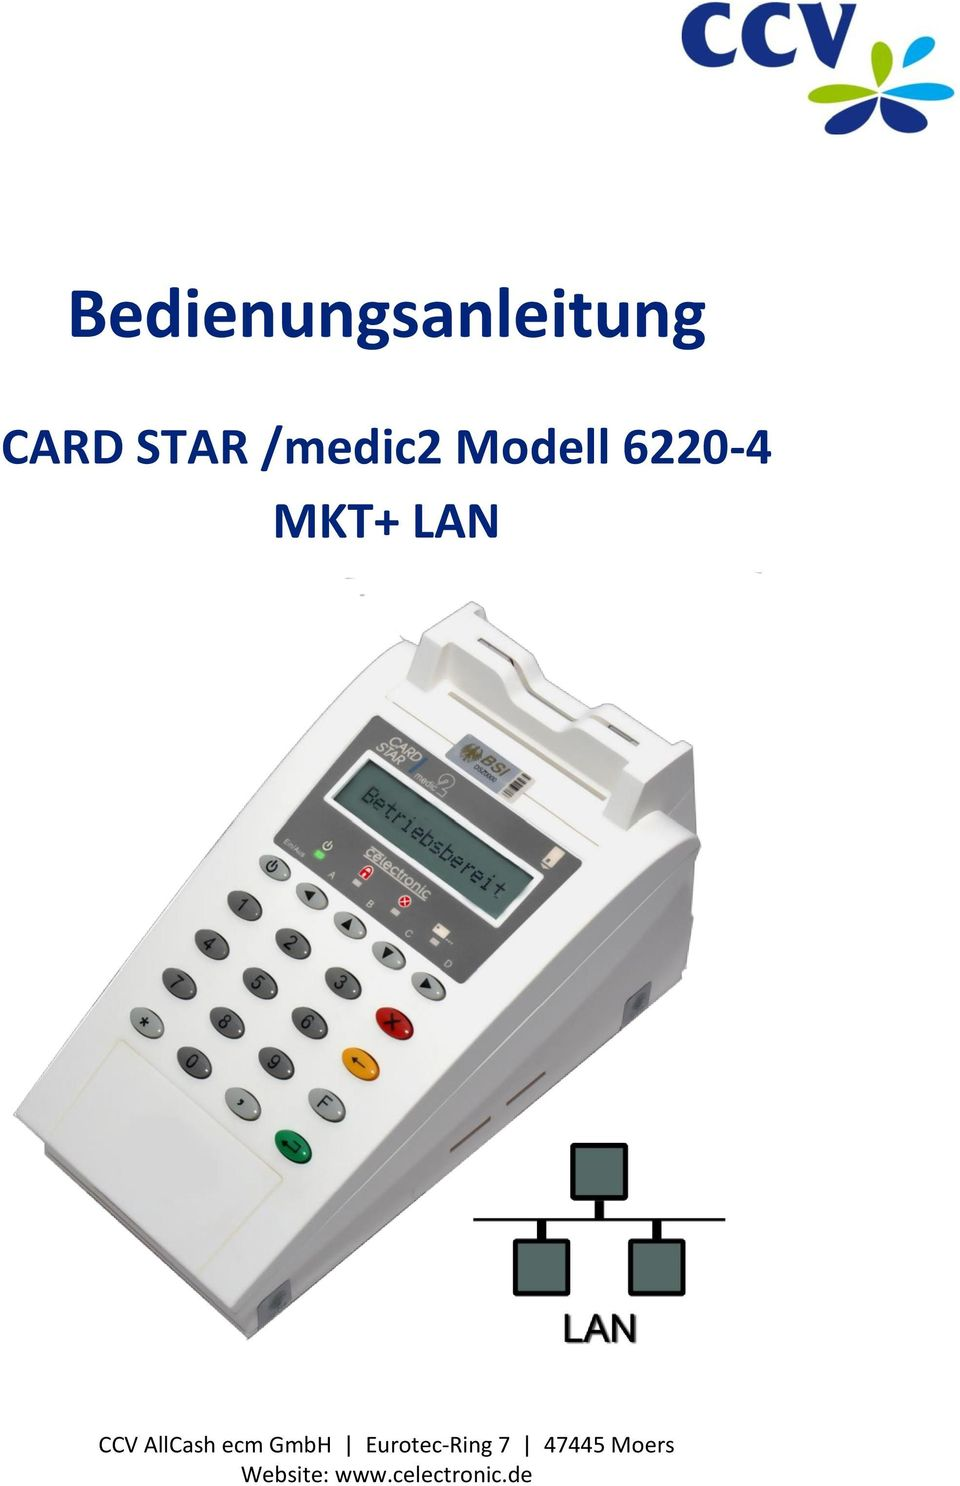 CCV AllCash ecm GmbH Eurotec-Ring